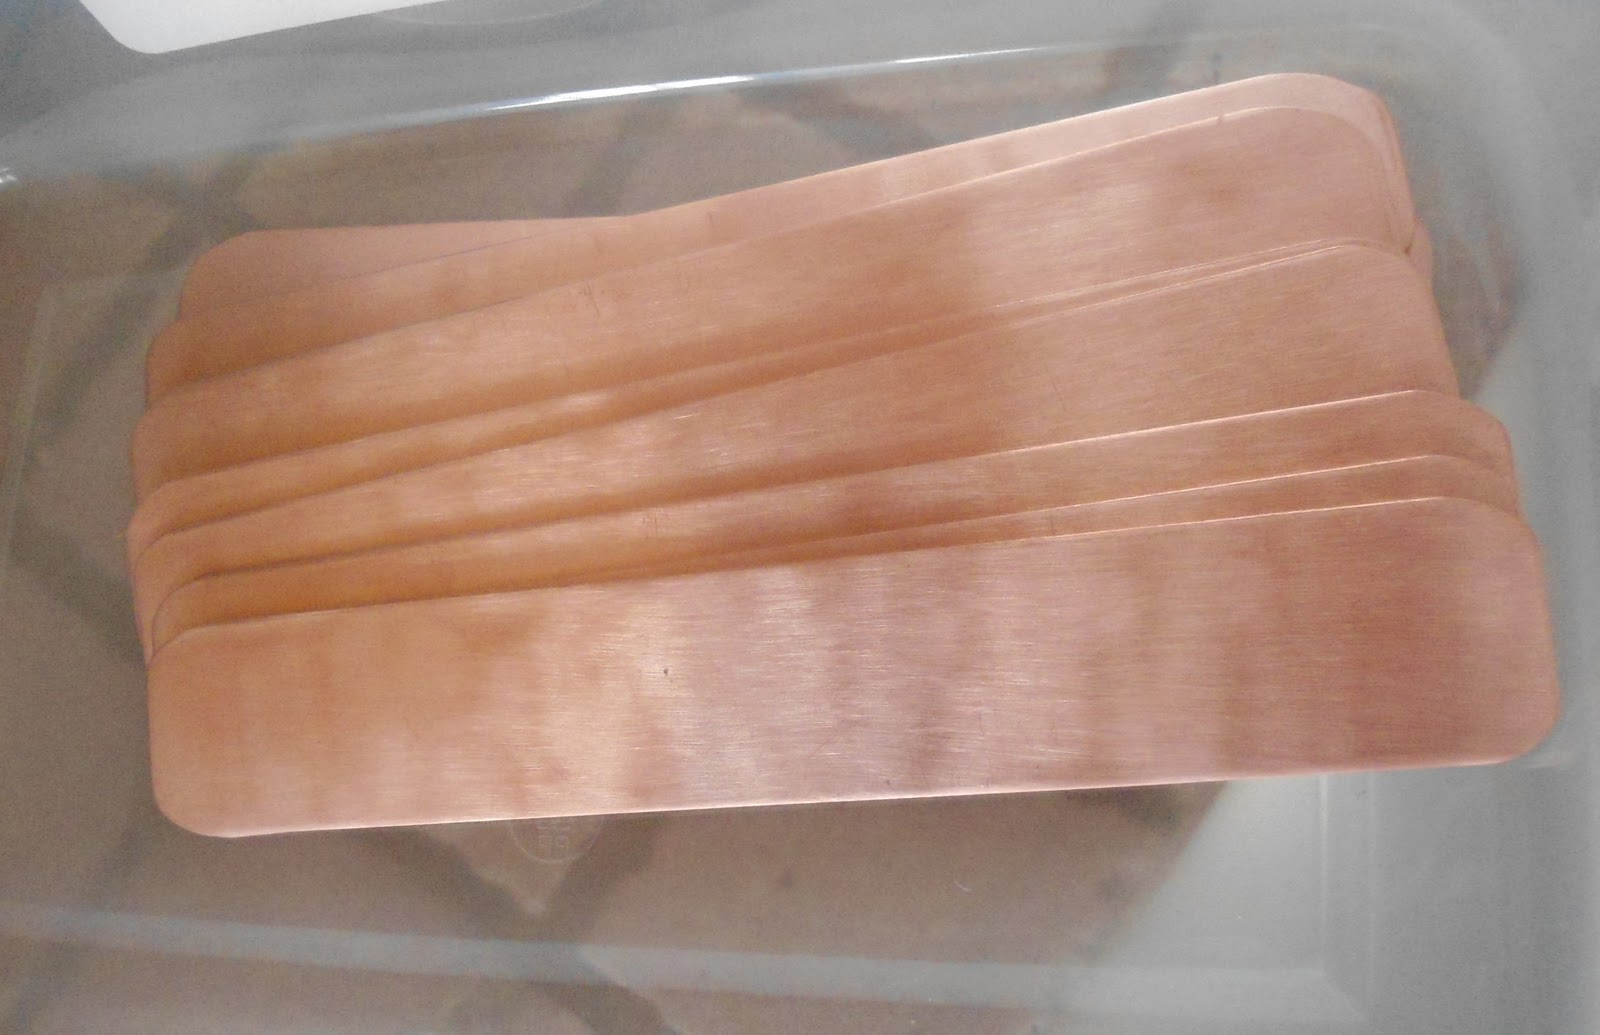 Started Prepping Some Copper Bracelet Blanks Triming Filing And Cleaning Ready For Resist